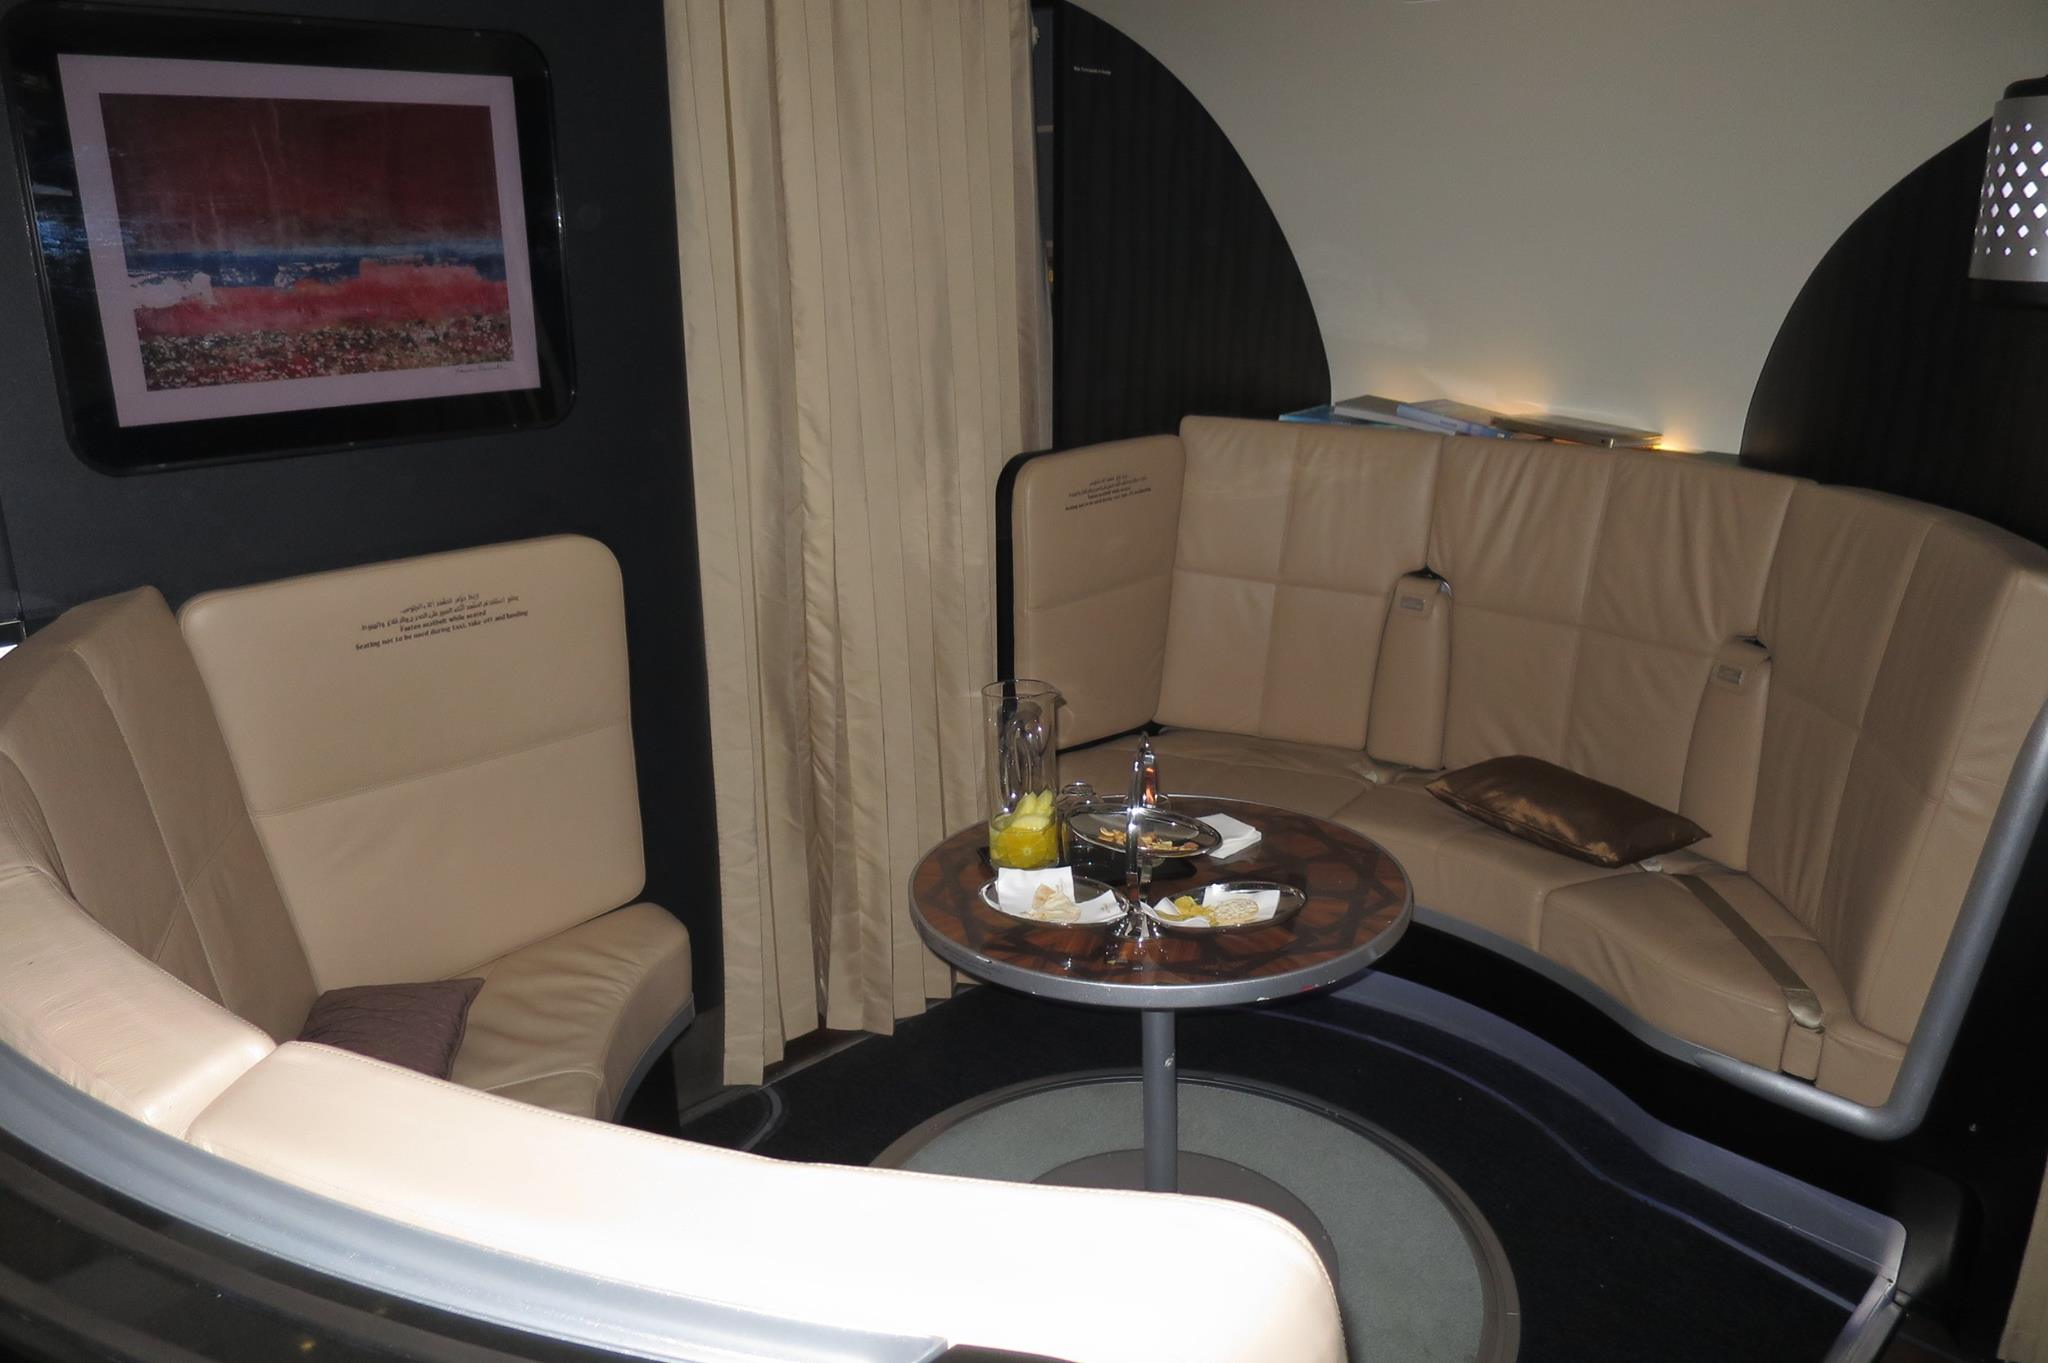 Between first class and business class is a nice little lounge area